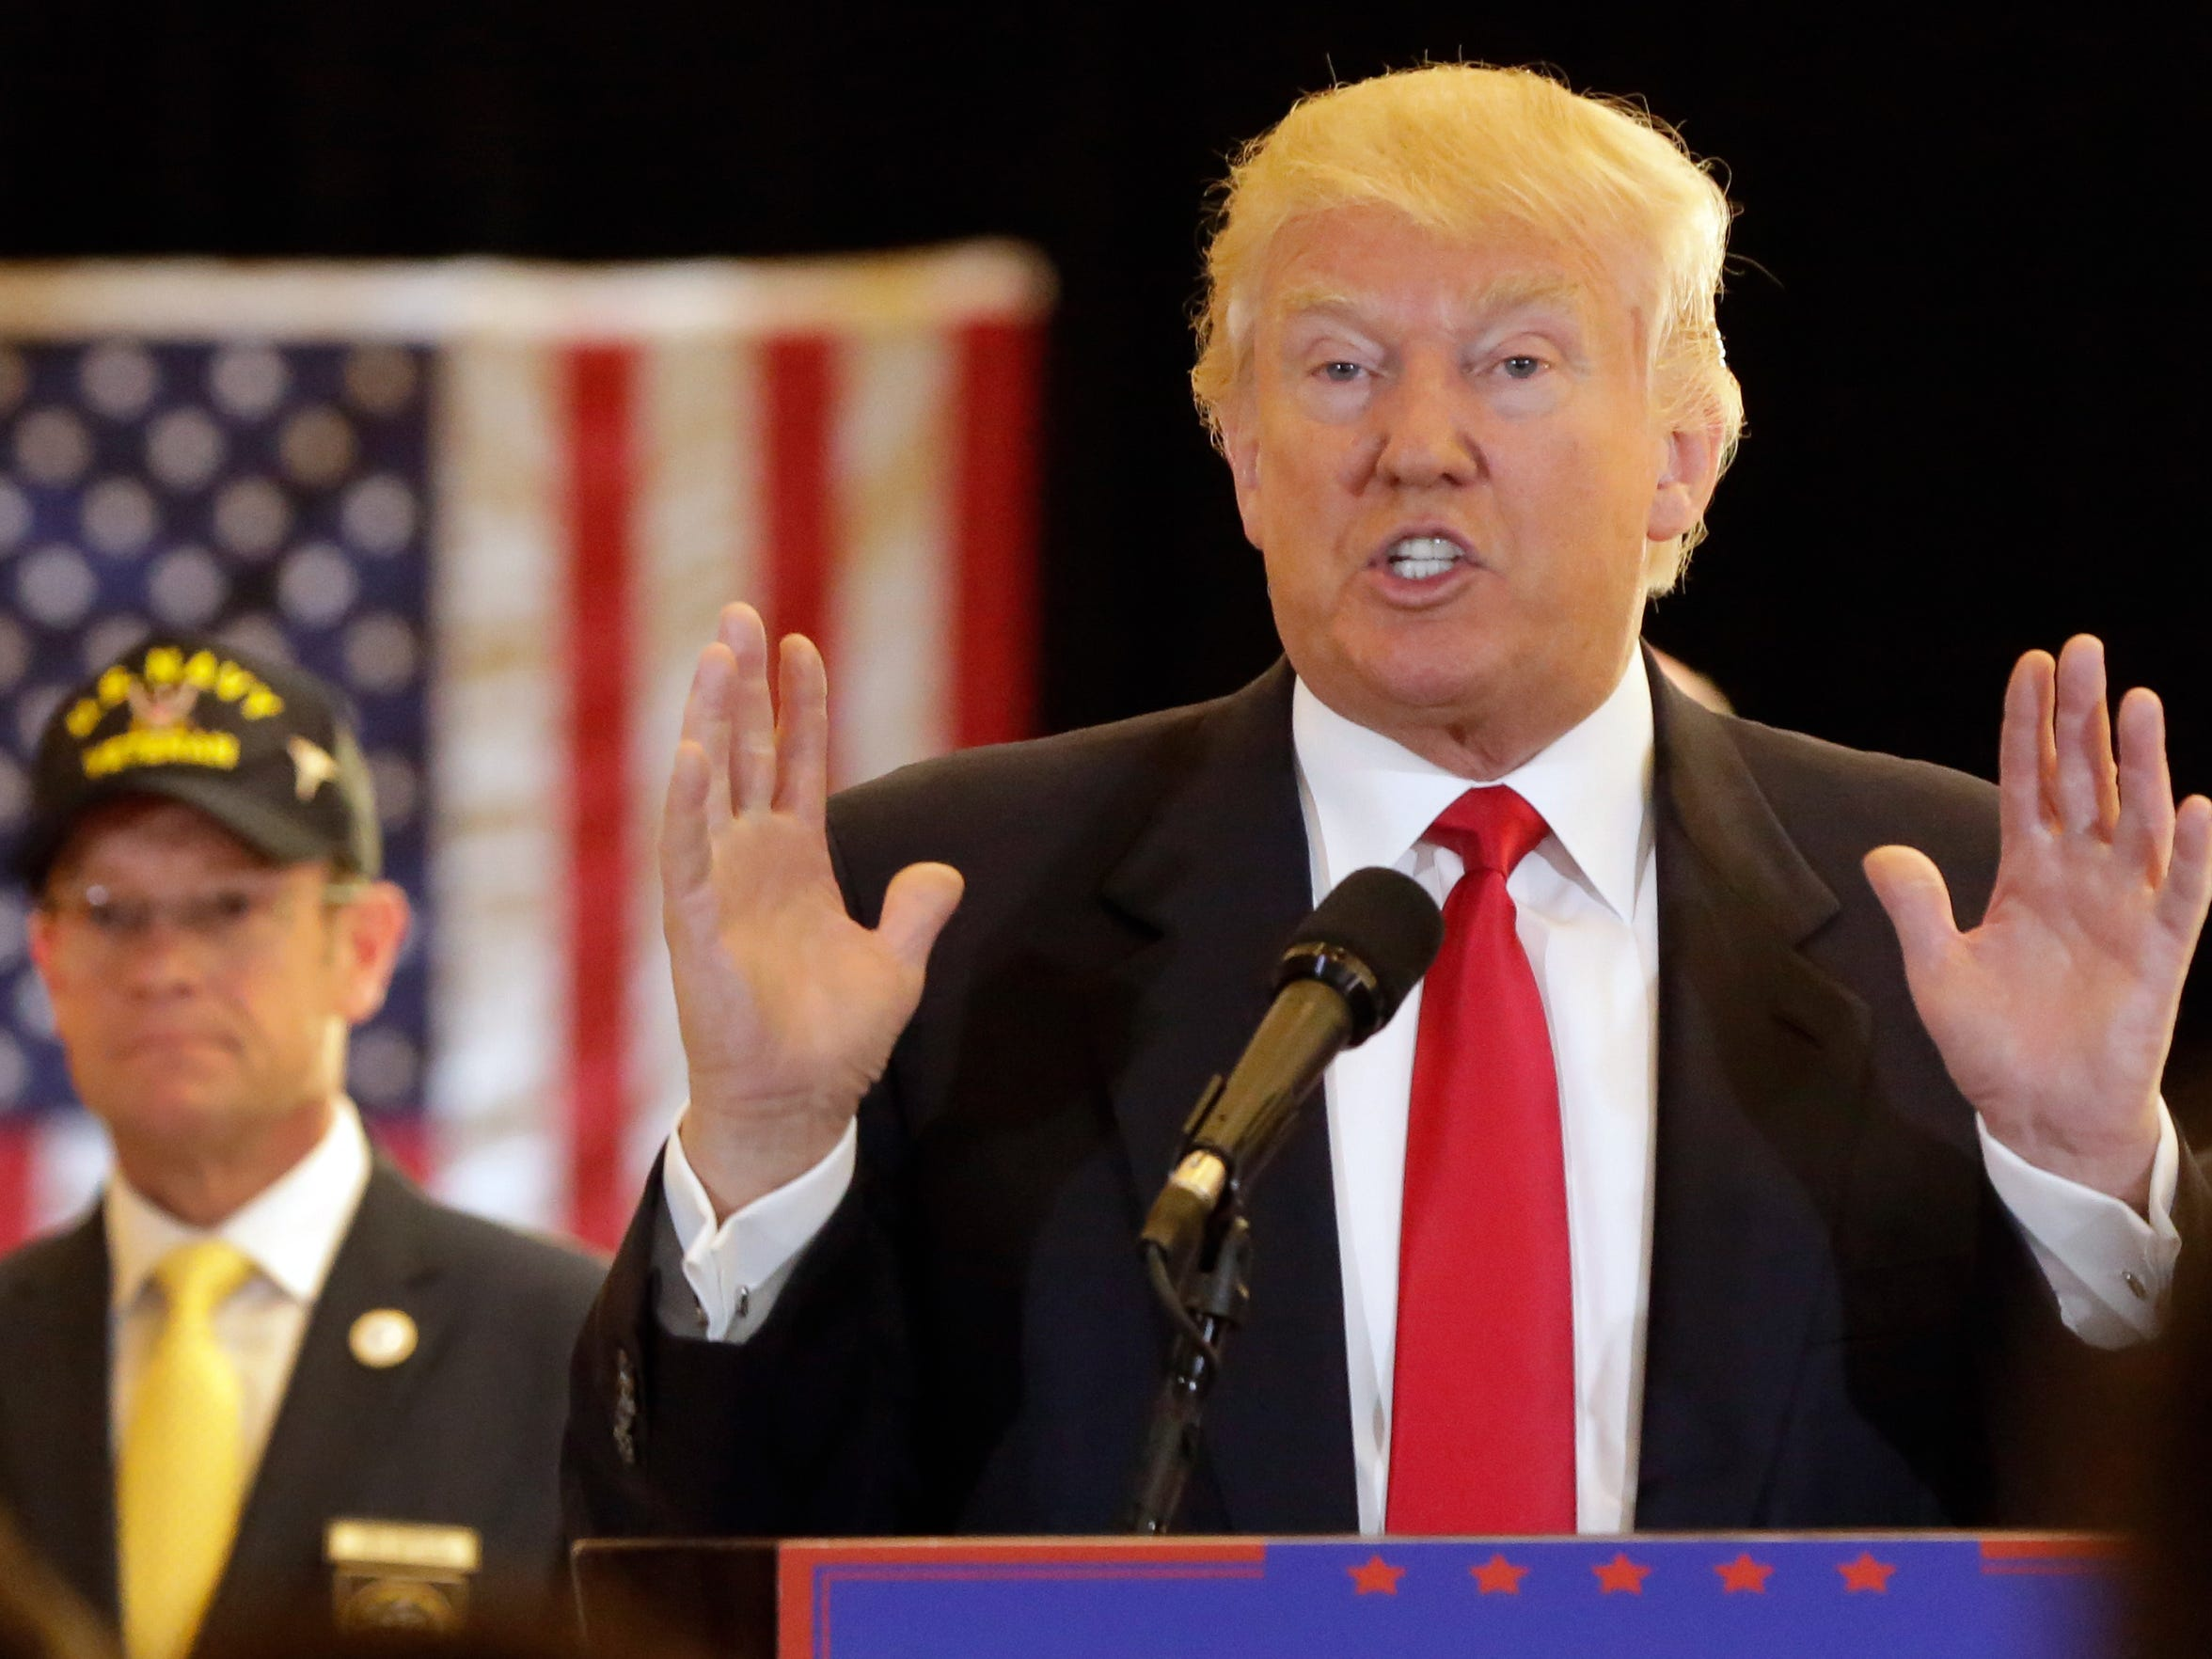 Republican presidential candidate Donald Trump answers questions during a news conference in New York on Tuesday. Trump is poised to get a tax cut by shifting his trademarks to a new Delaware company.